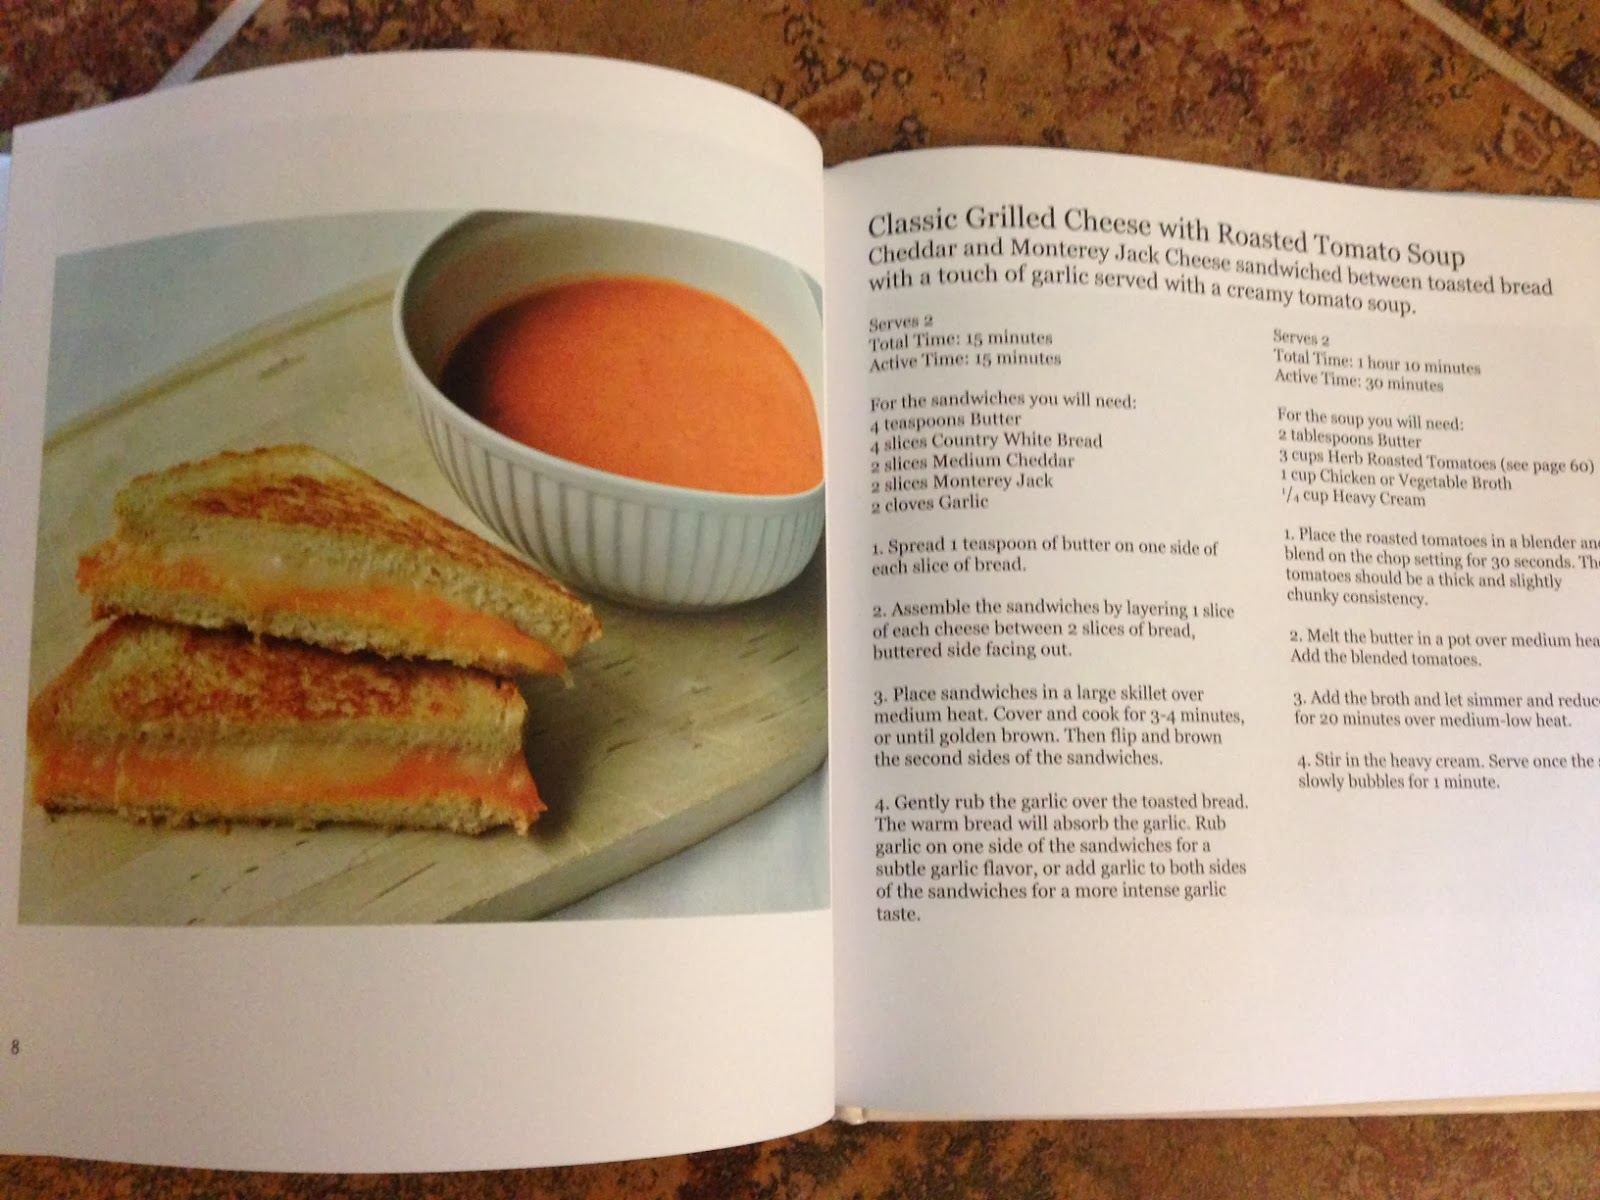 Writersdolaundrytoos The Gourmet Grilled Cheese Cookbook By